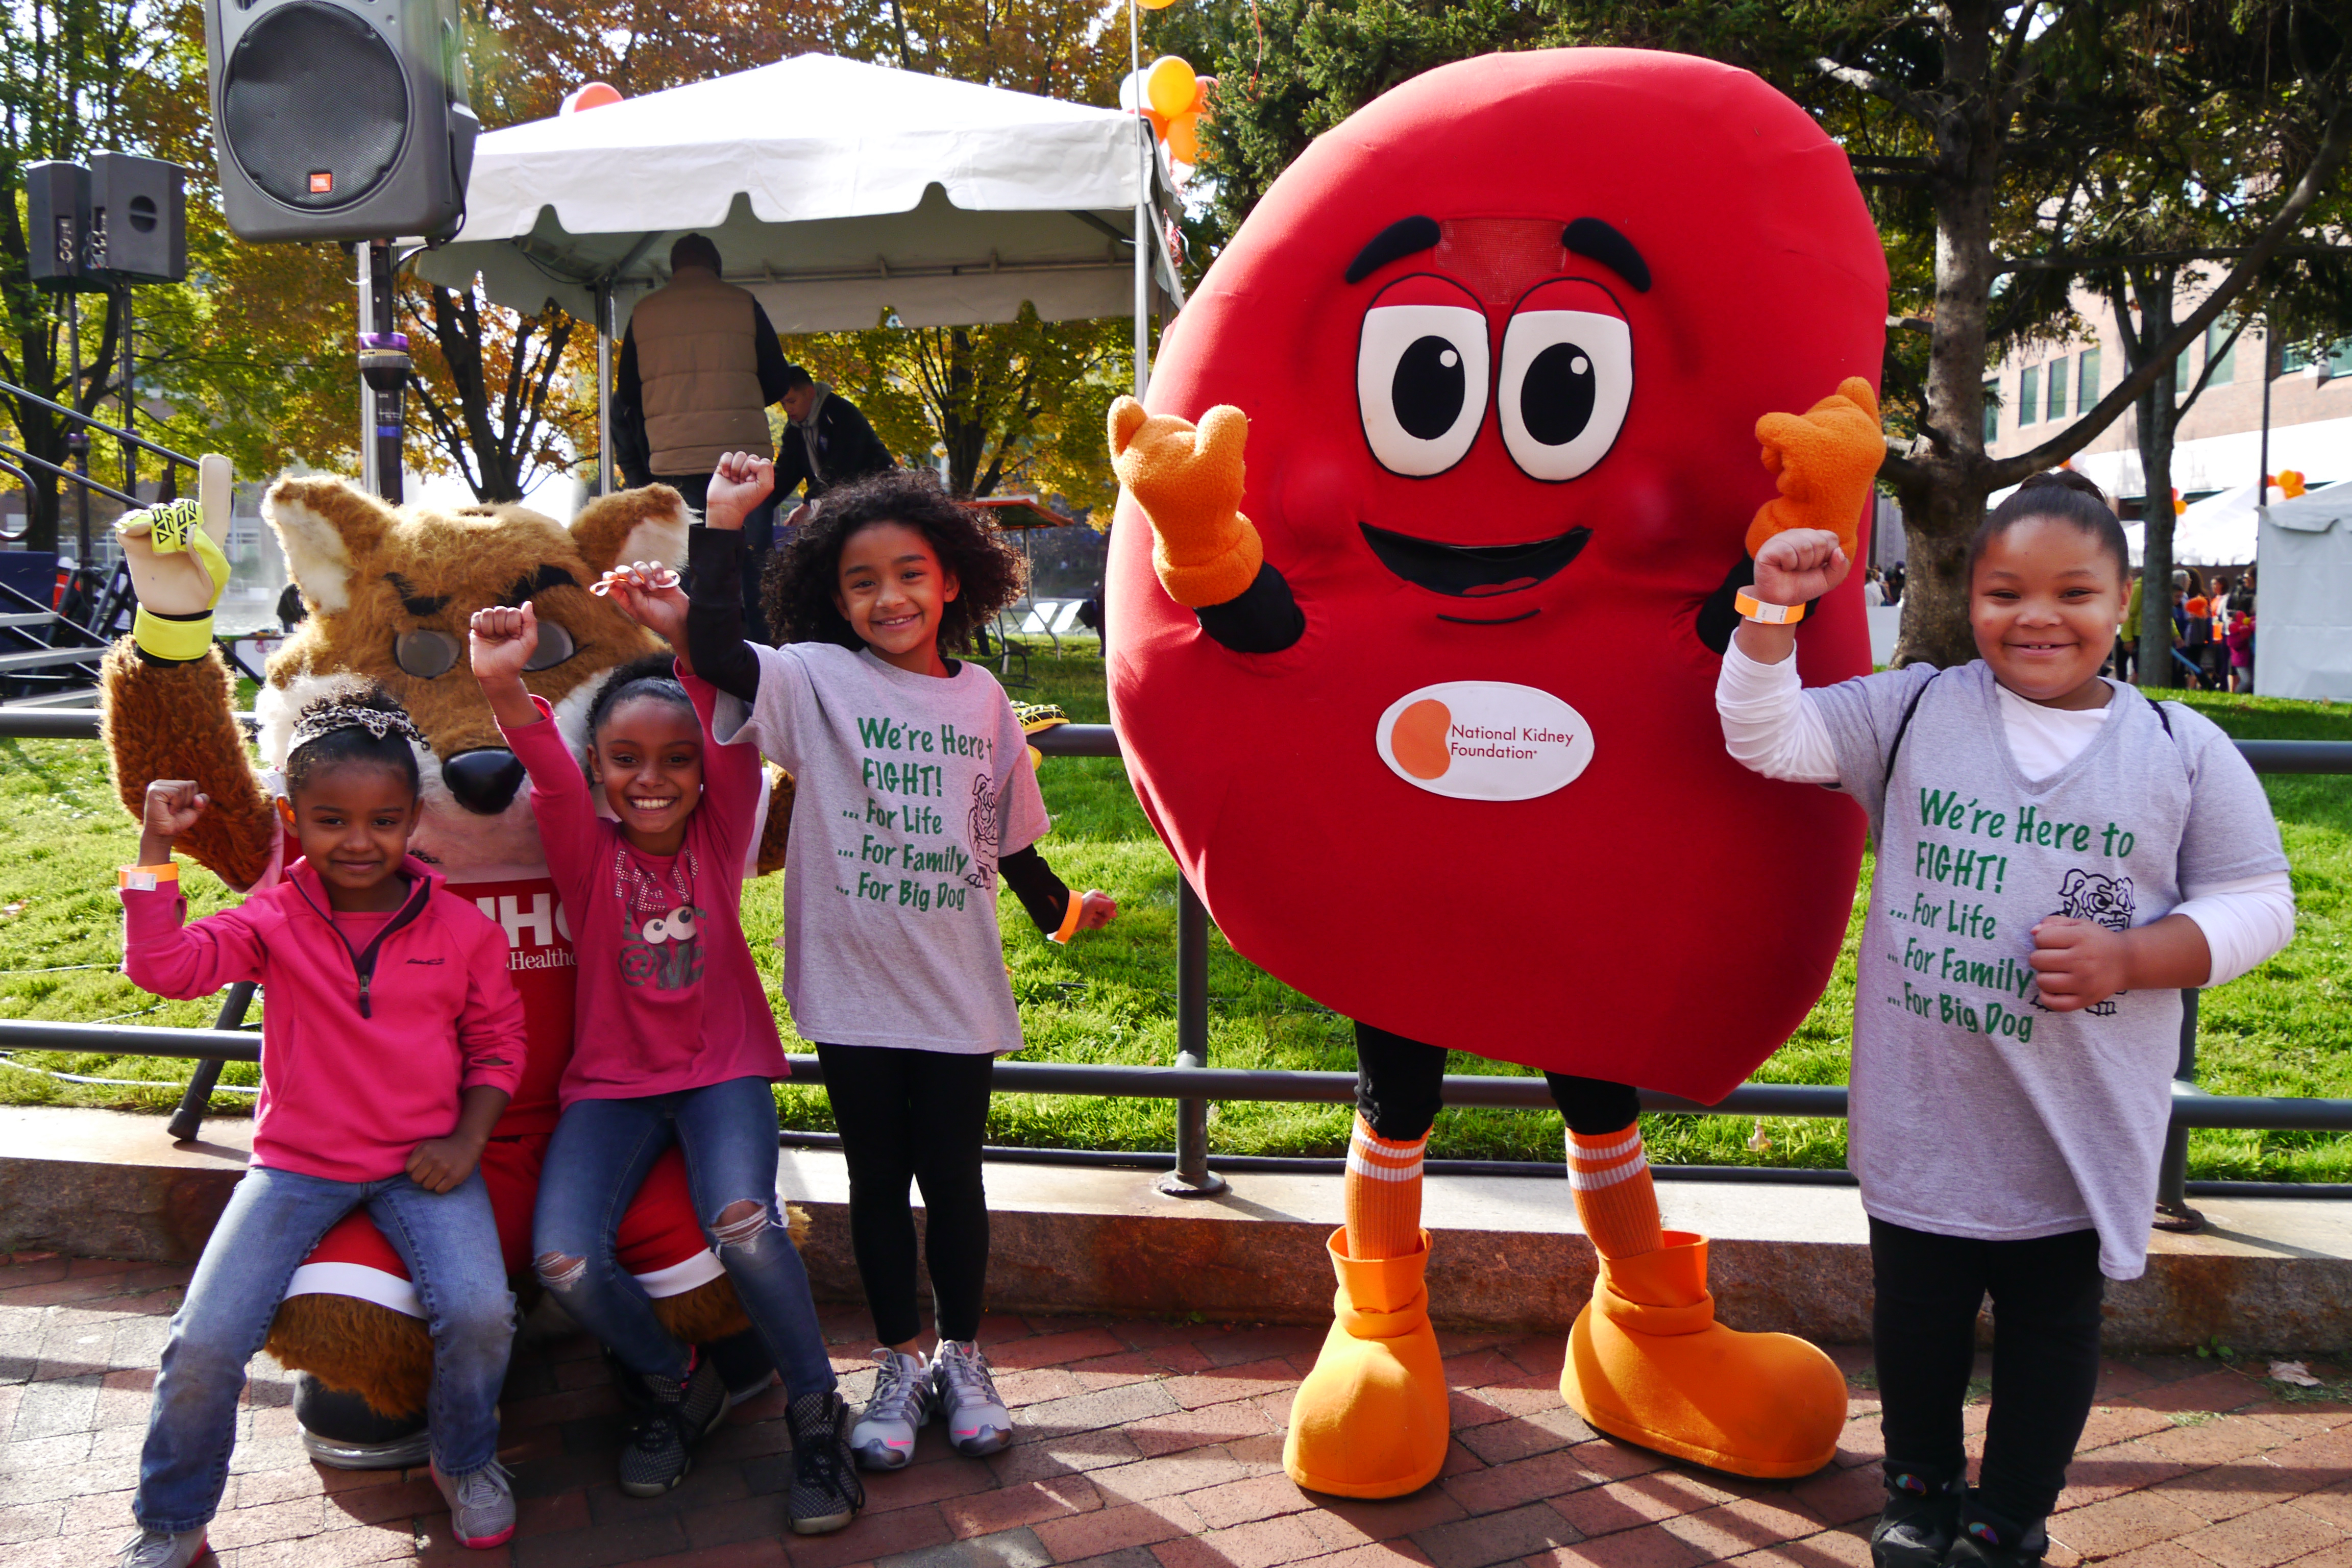 Children standing next to someone in a kidney costume